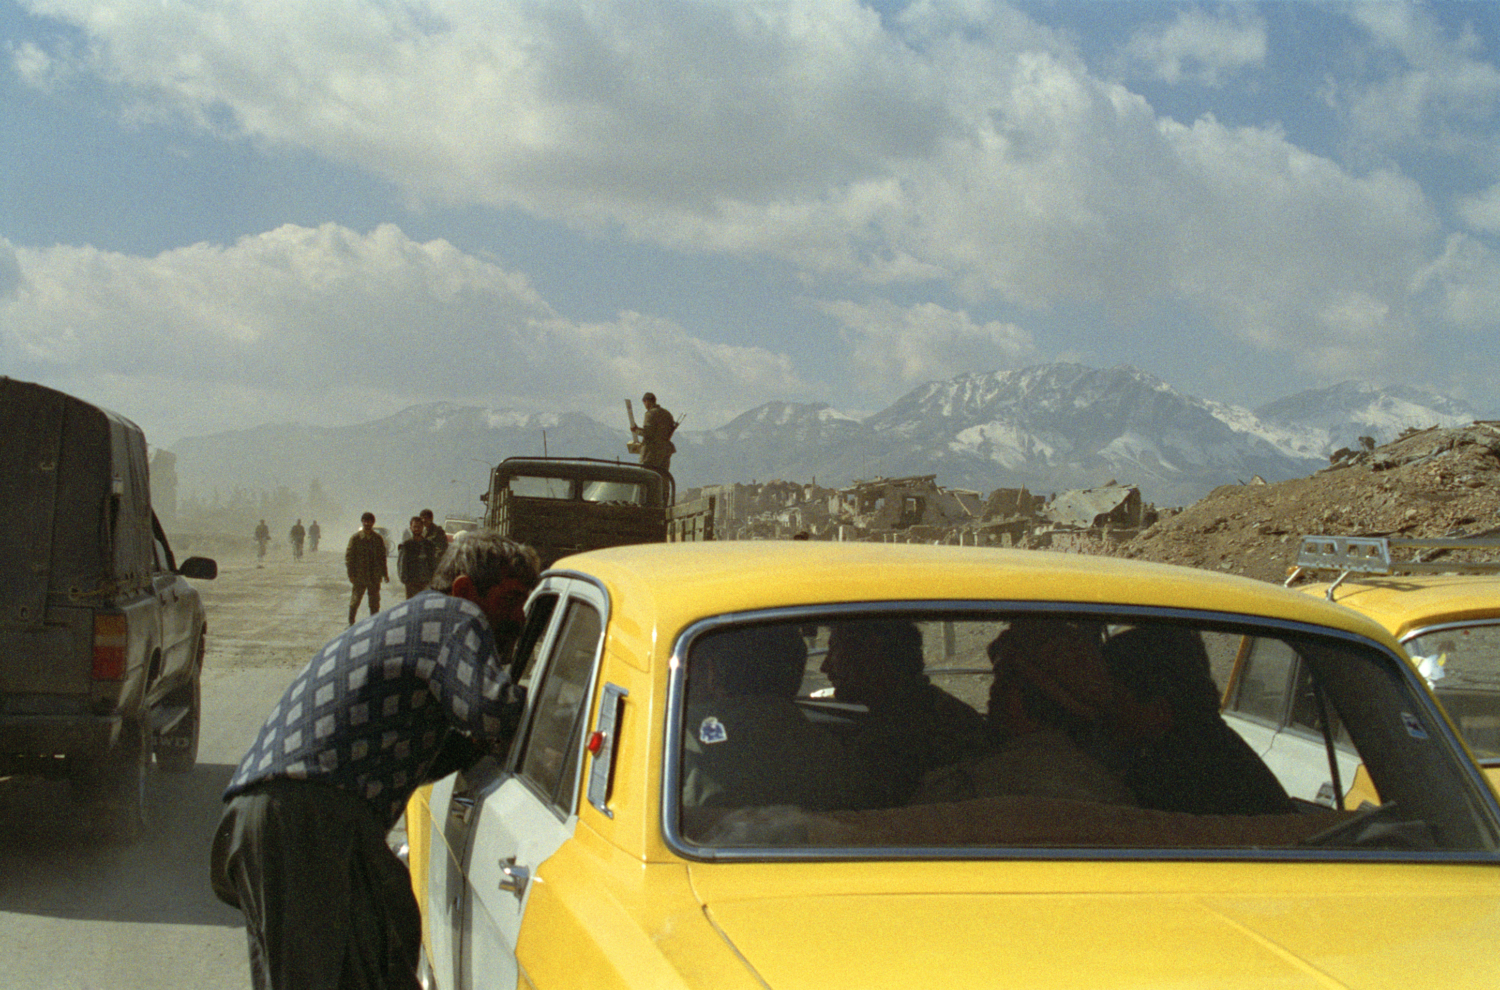 Robert Knoth & Antoinette de Jong Poppy - Trails of Afghan Heroin, 2012